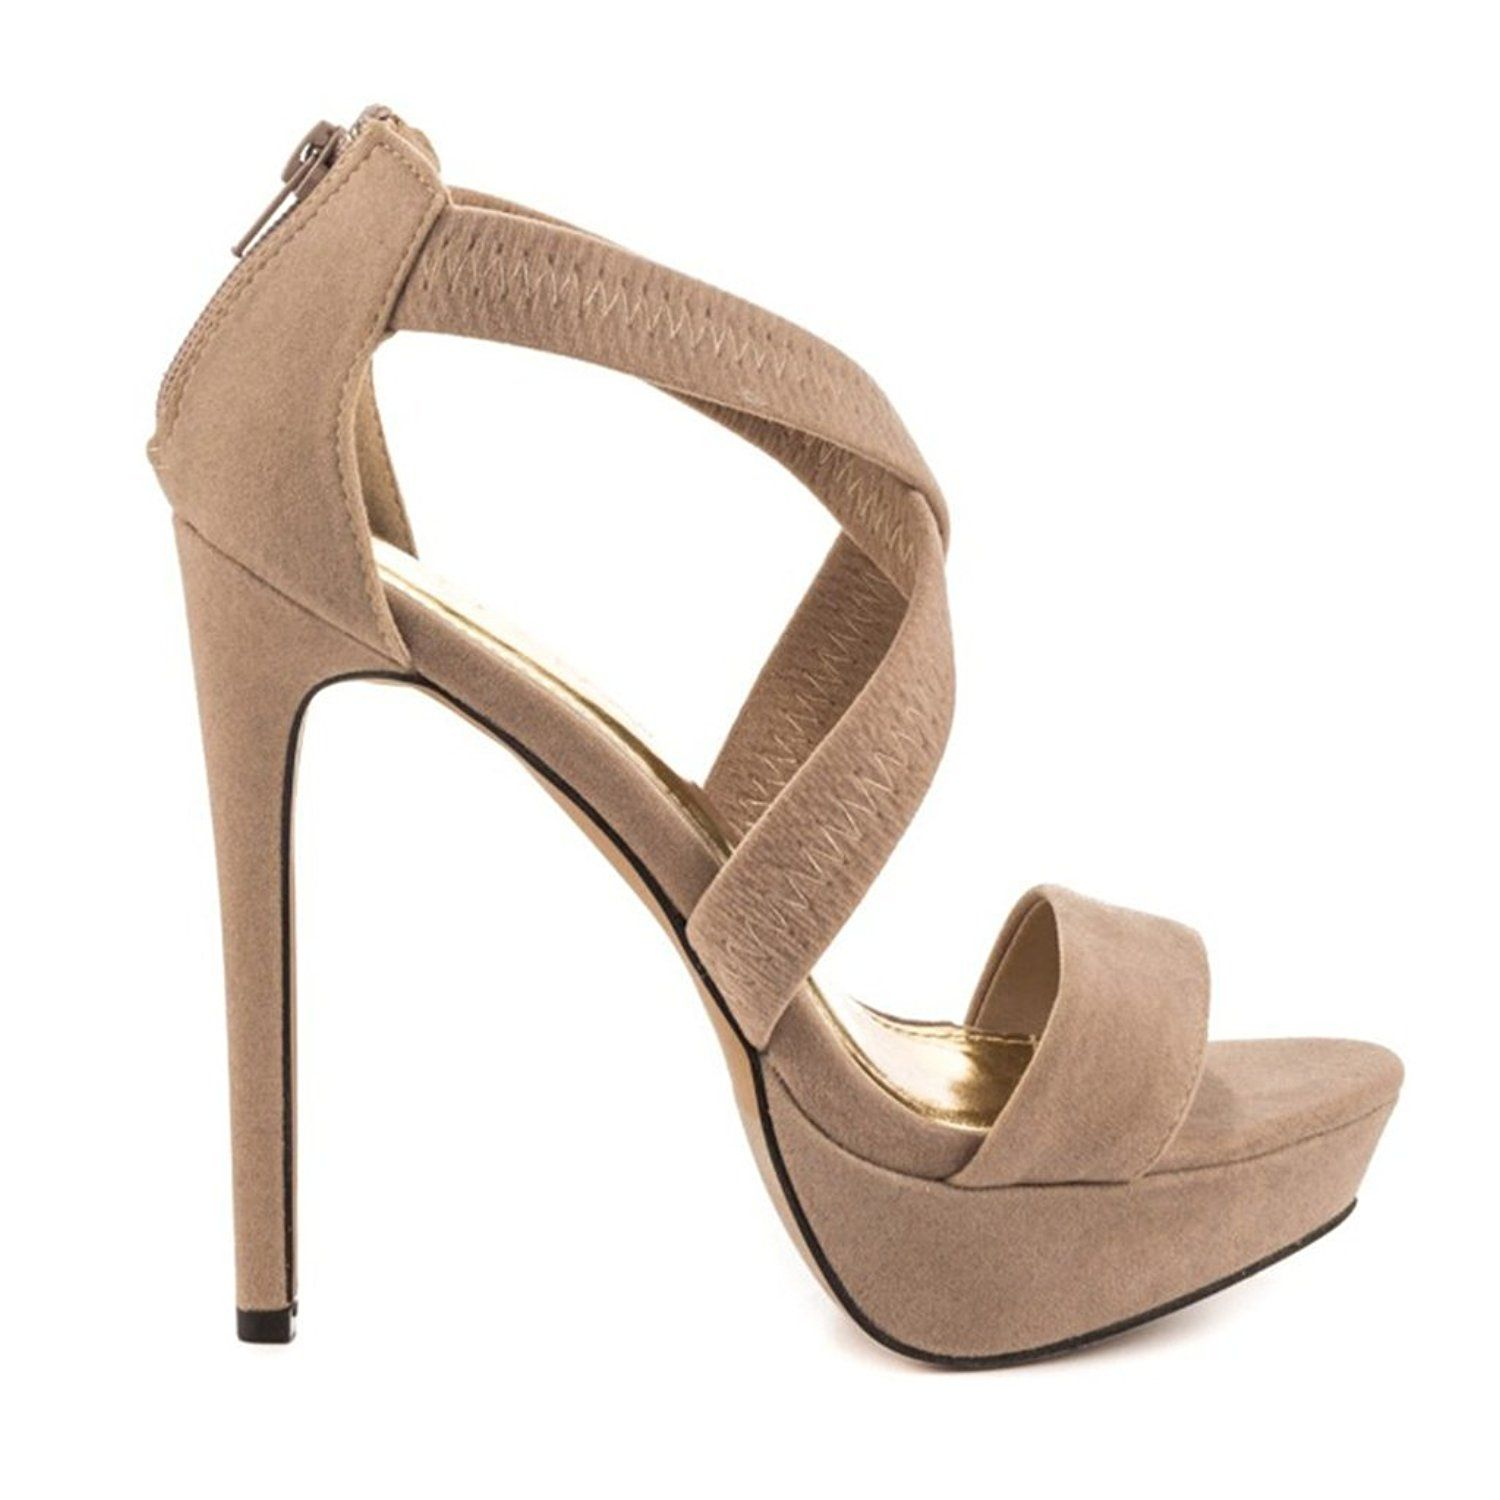 has clothing david footbed sleek design loop heel take strap comforter at detail comfortable with pointed ankle the stilettos an padded and people toe hook fastener a two pin open charles for featuring boutiques simple free step